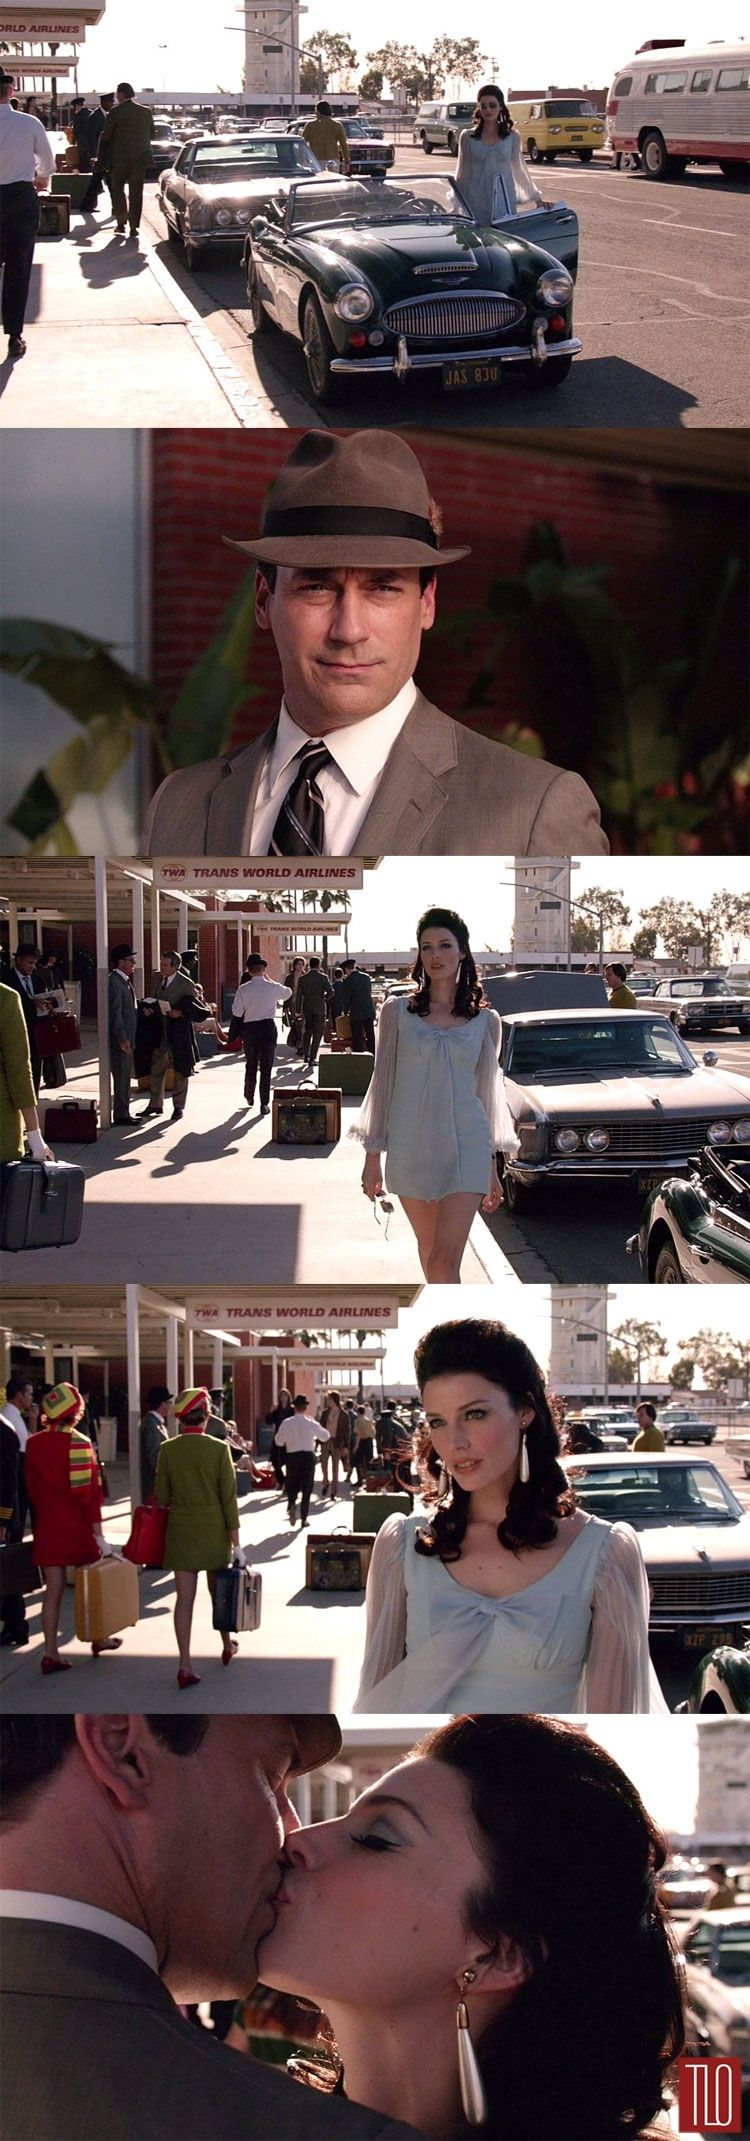 Could be the most stylized scene Mad Men has ever produced. Perfection.